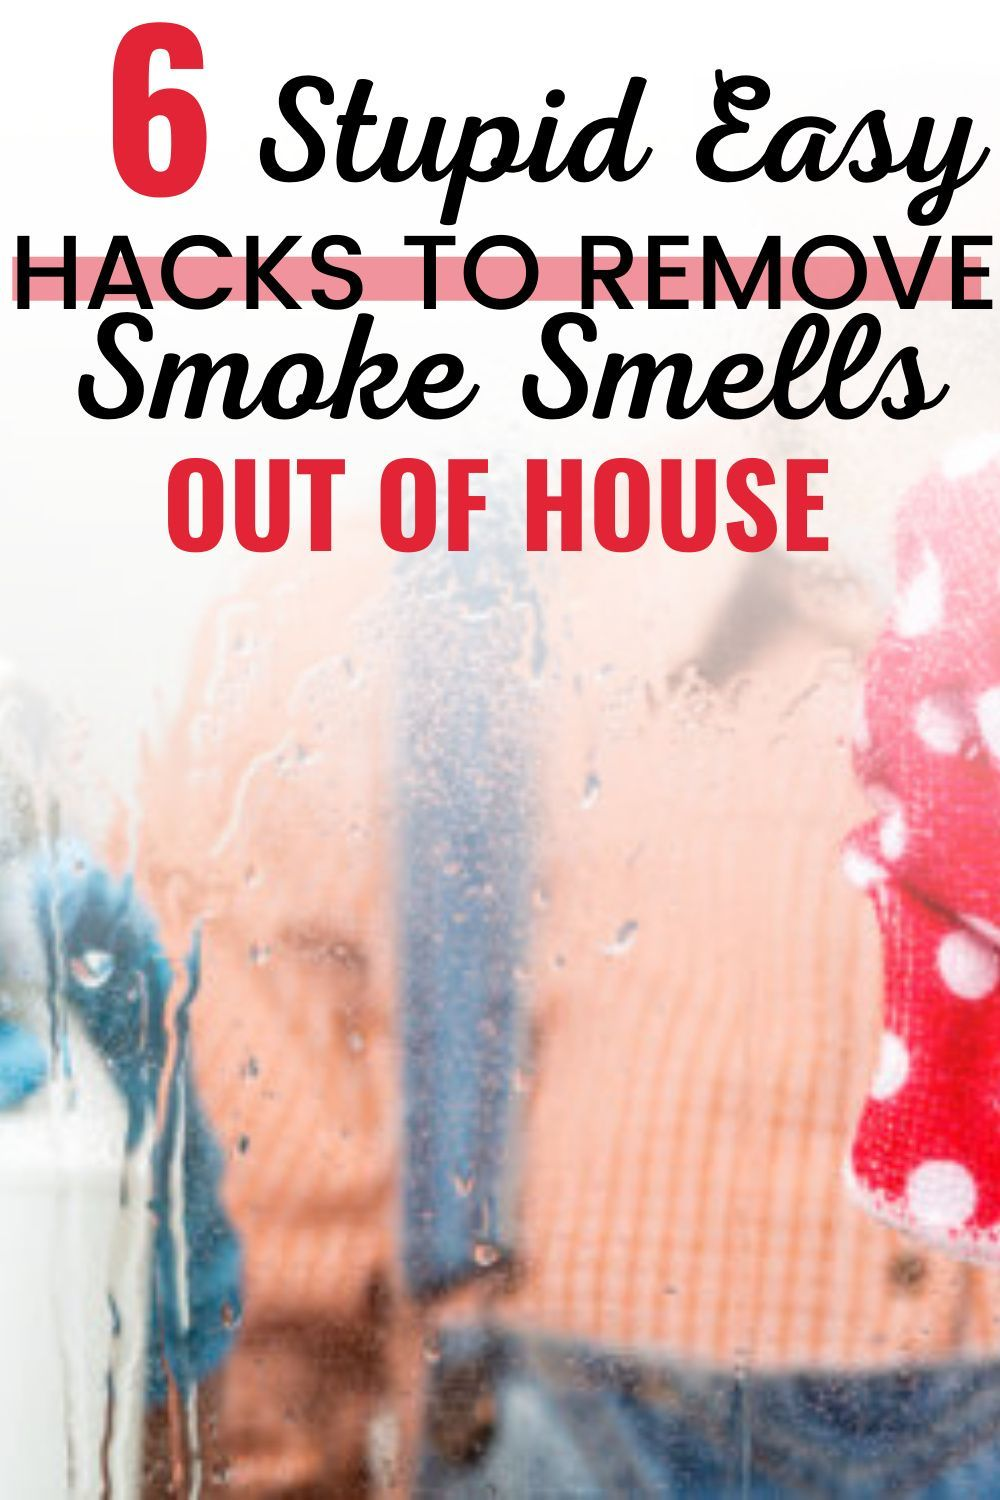 How to Get Rid of Smoke Smell - Hacks to remove sm